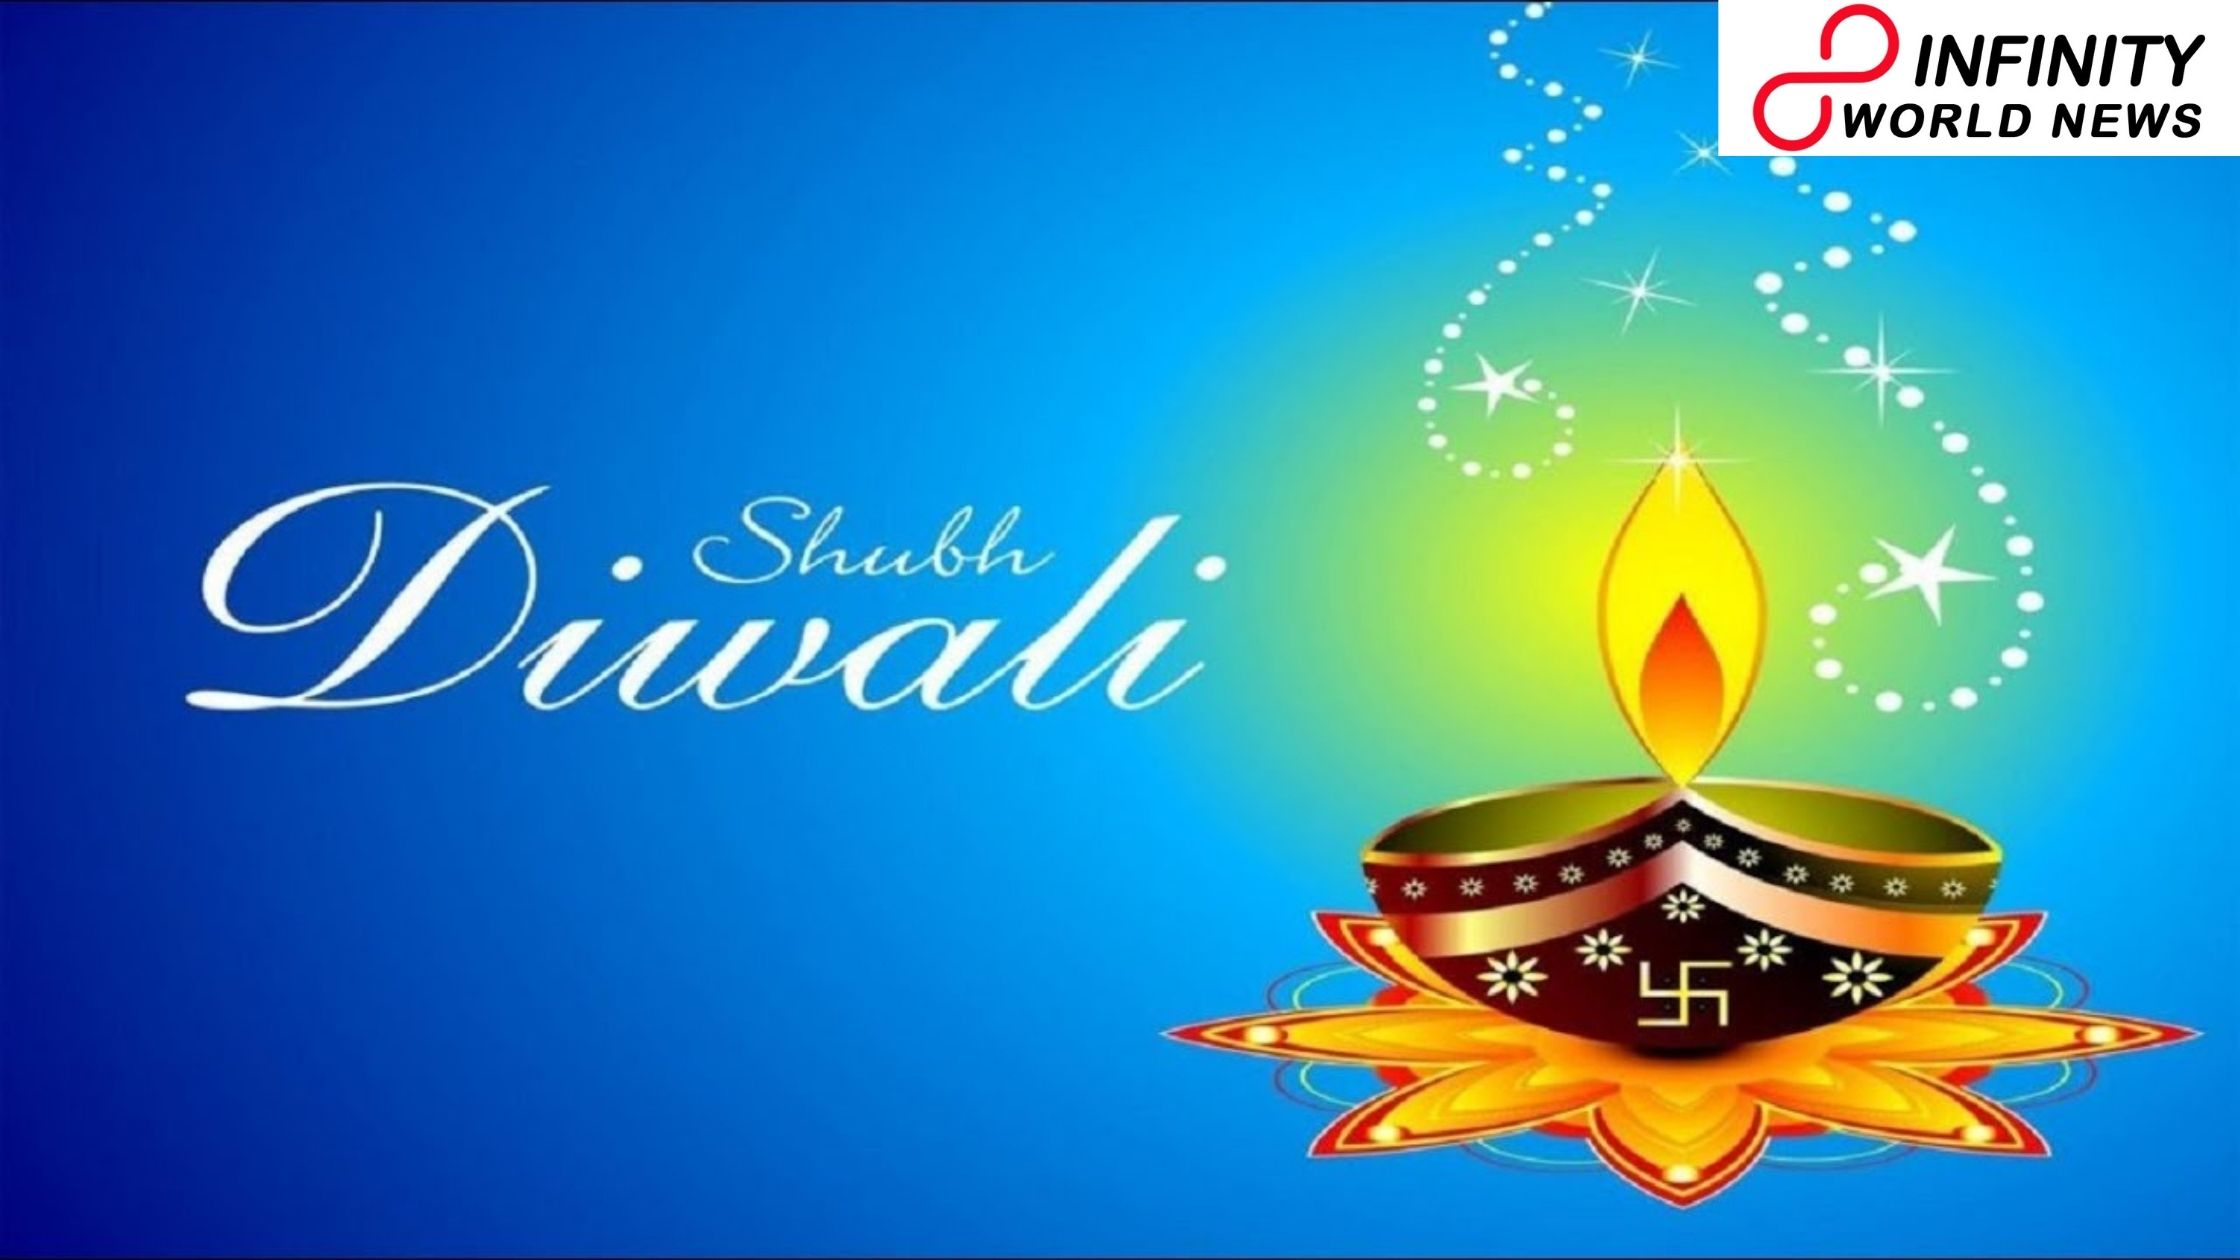 Saying Happy Diwali with endowments grins around proceeds in COVID